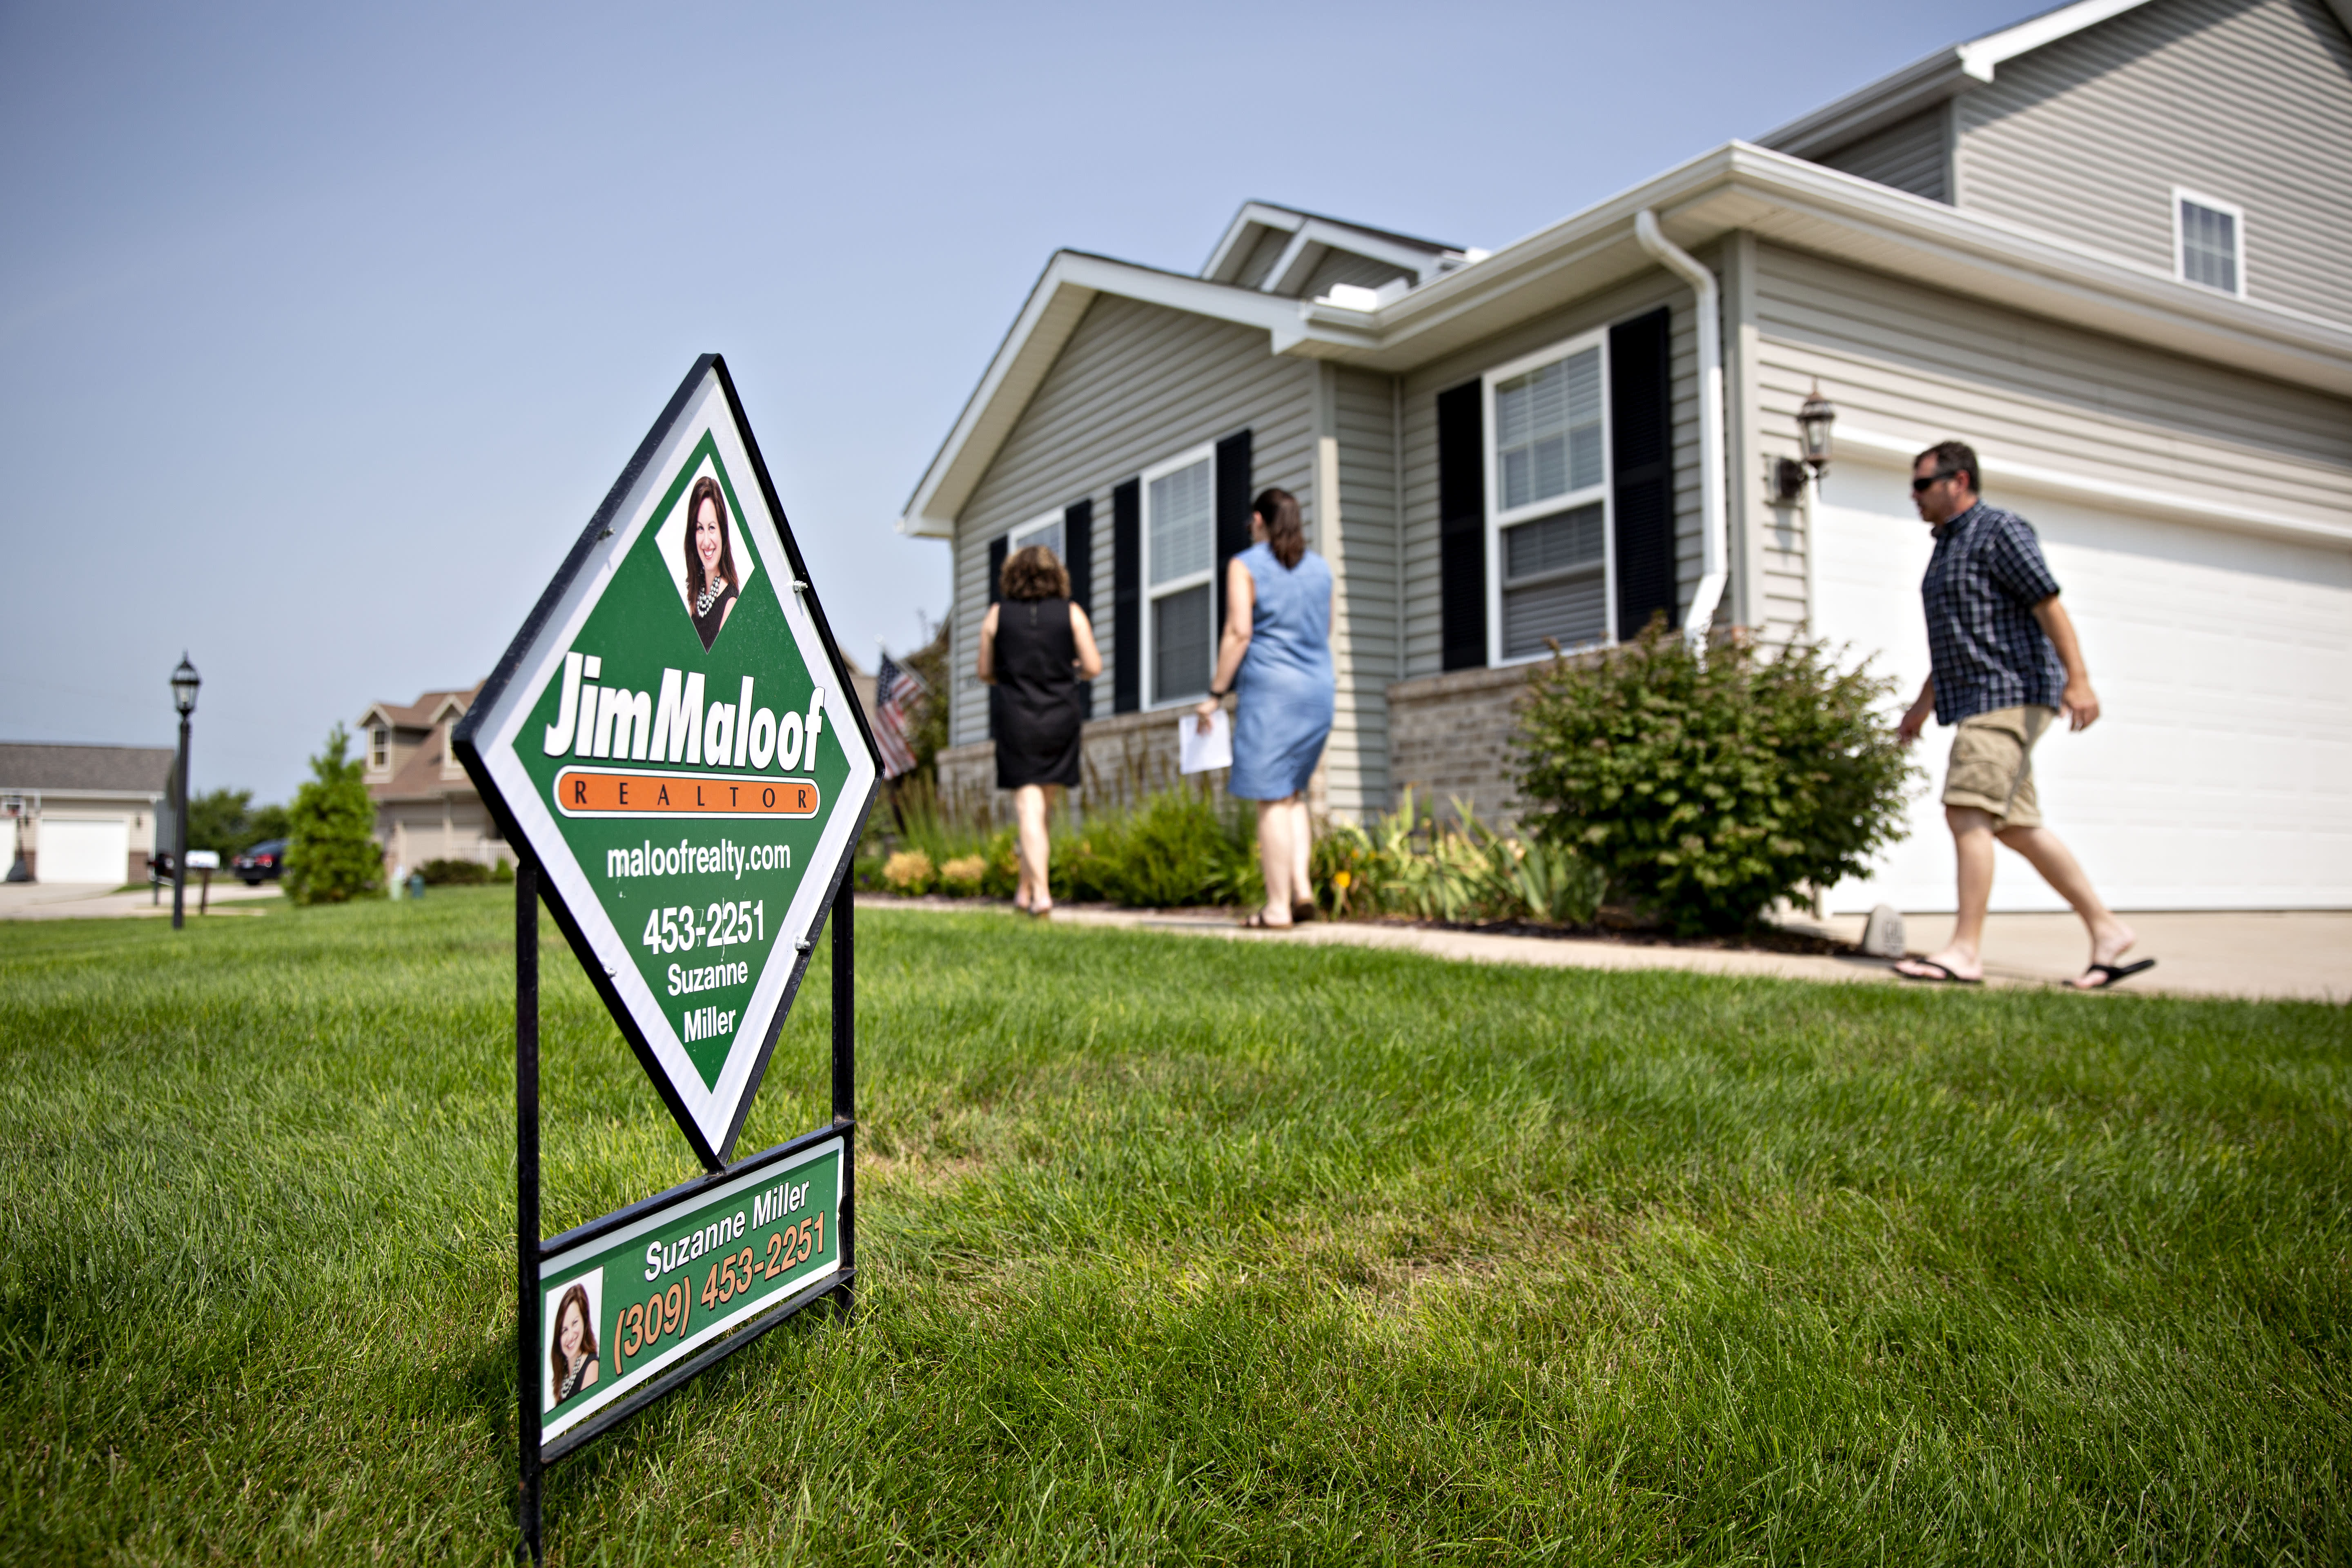 Here's why you might want to rethink getting an adjustable rate mortgage